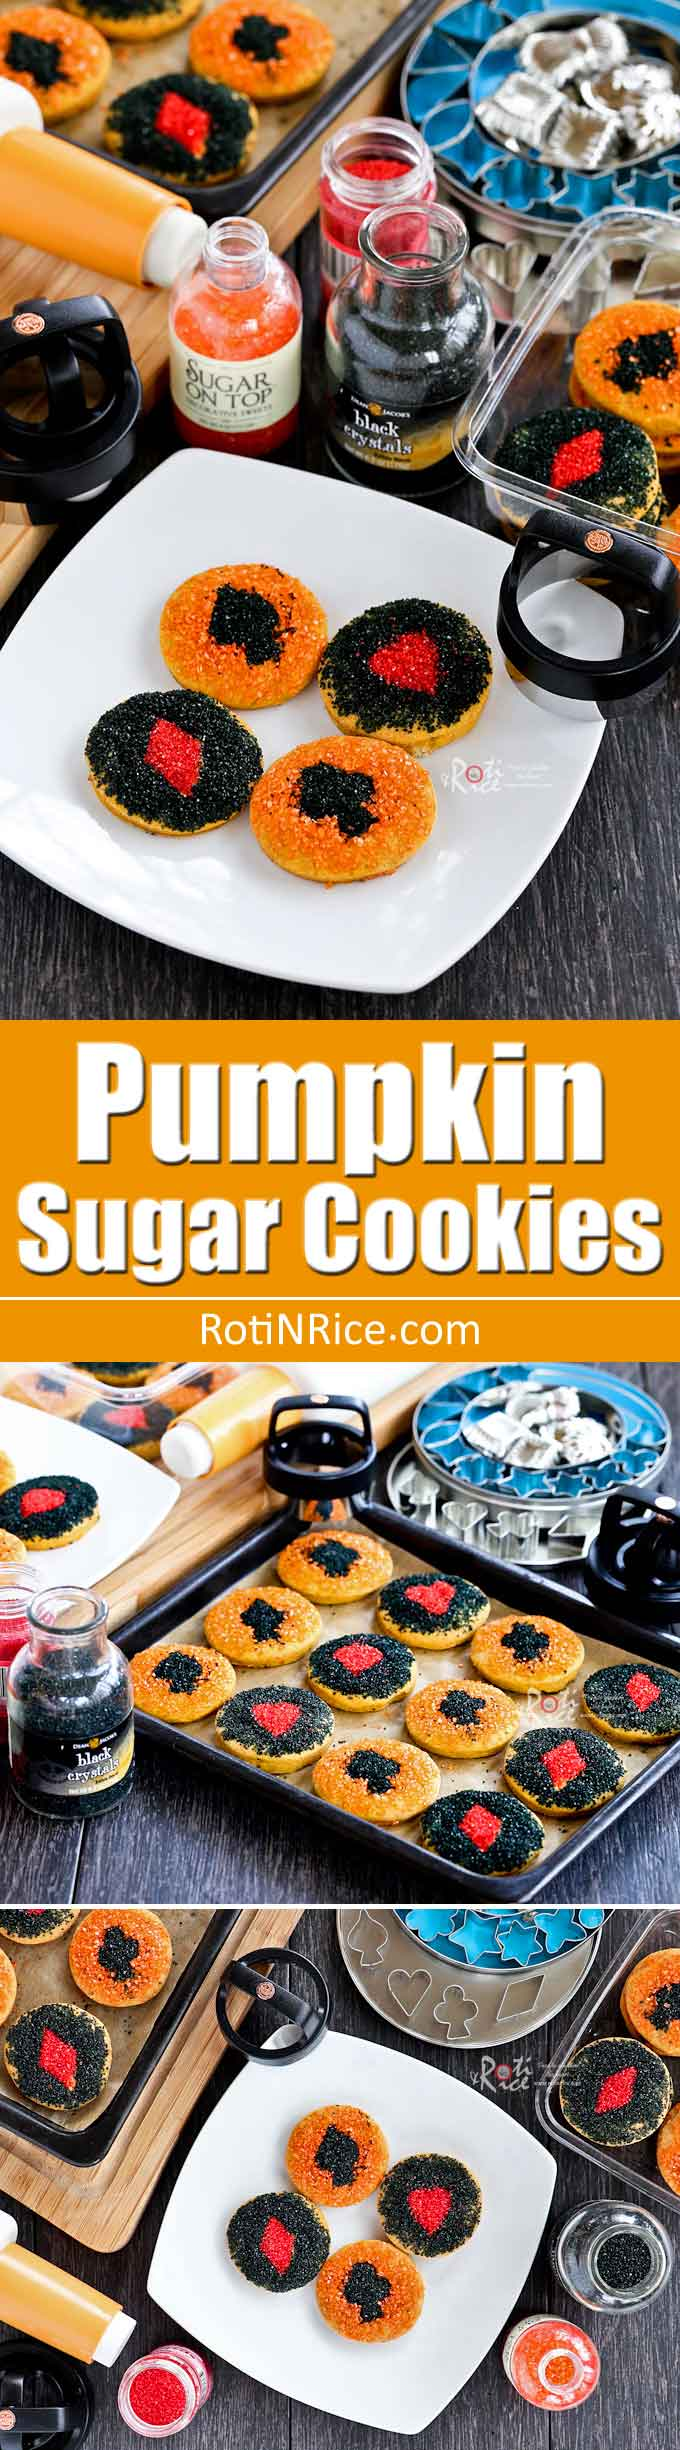 These soft, lightly spiced Pumpkin Sugar Cookies with colorful sprinkles are a delicious way to enjoy the Fall flavors. Also, great for a Fall themed party. | RotiNRice.com